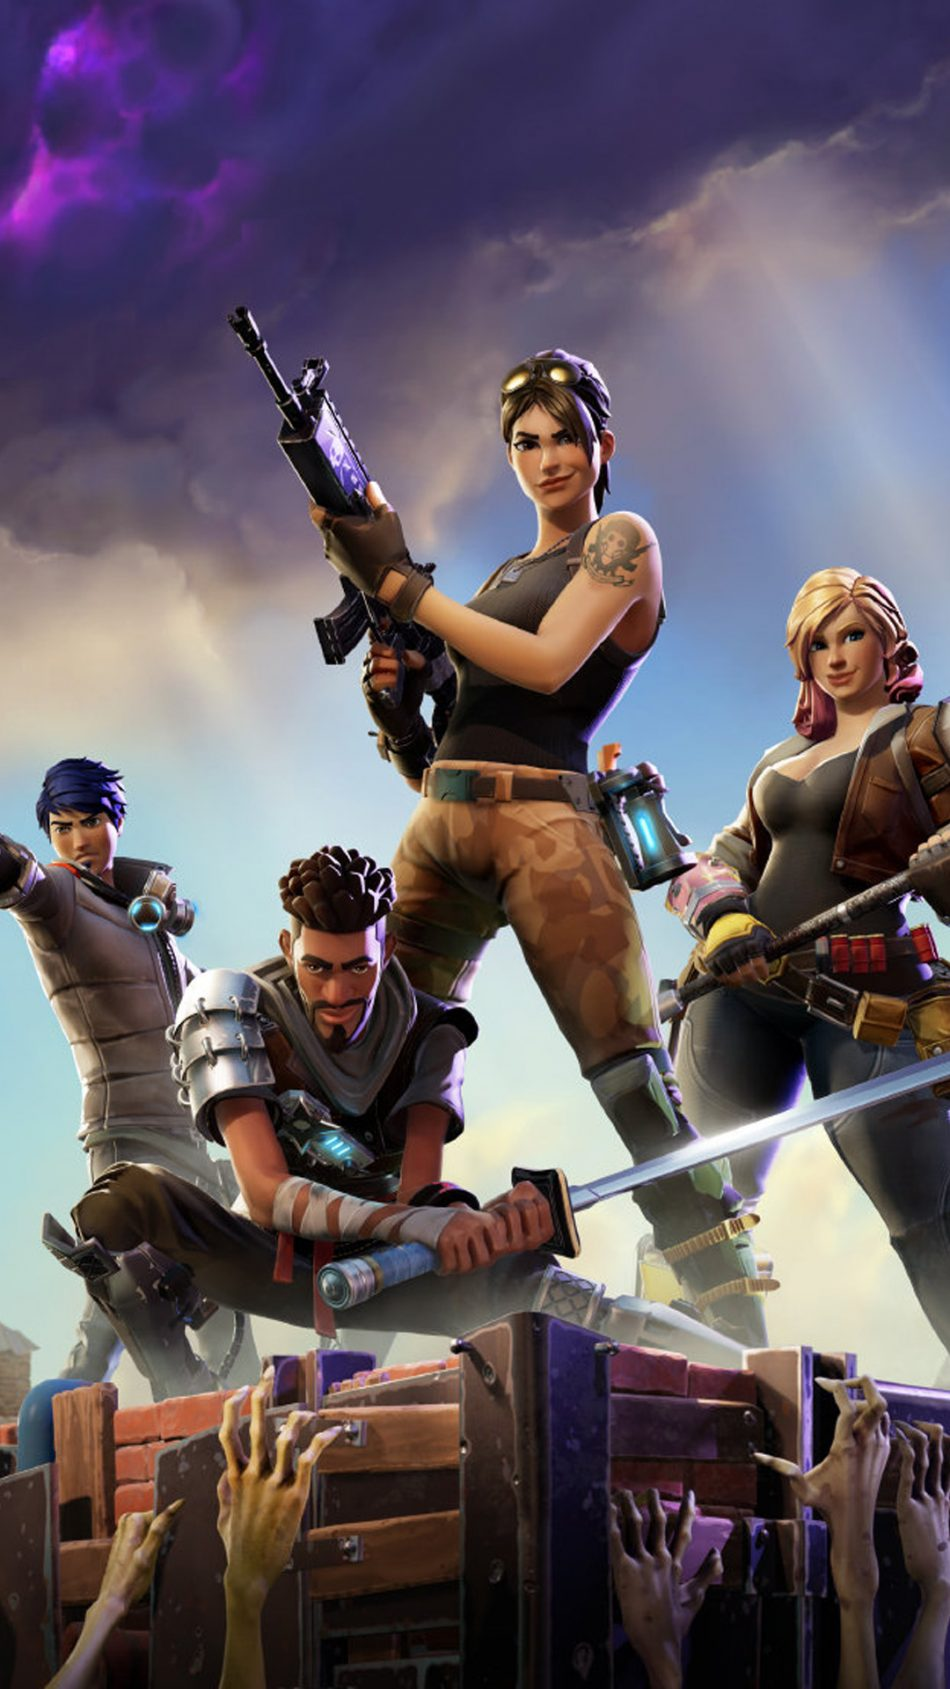 Download Fortnite Battle Royale Video Game Free Pure 4k Ultra Hd